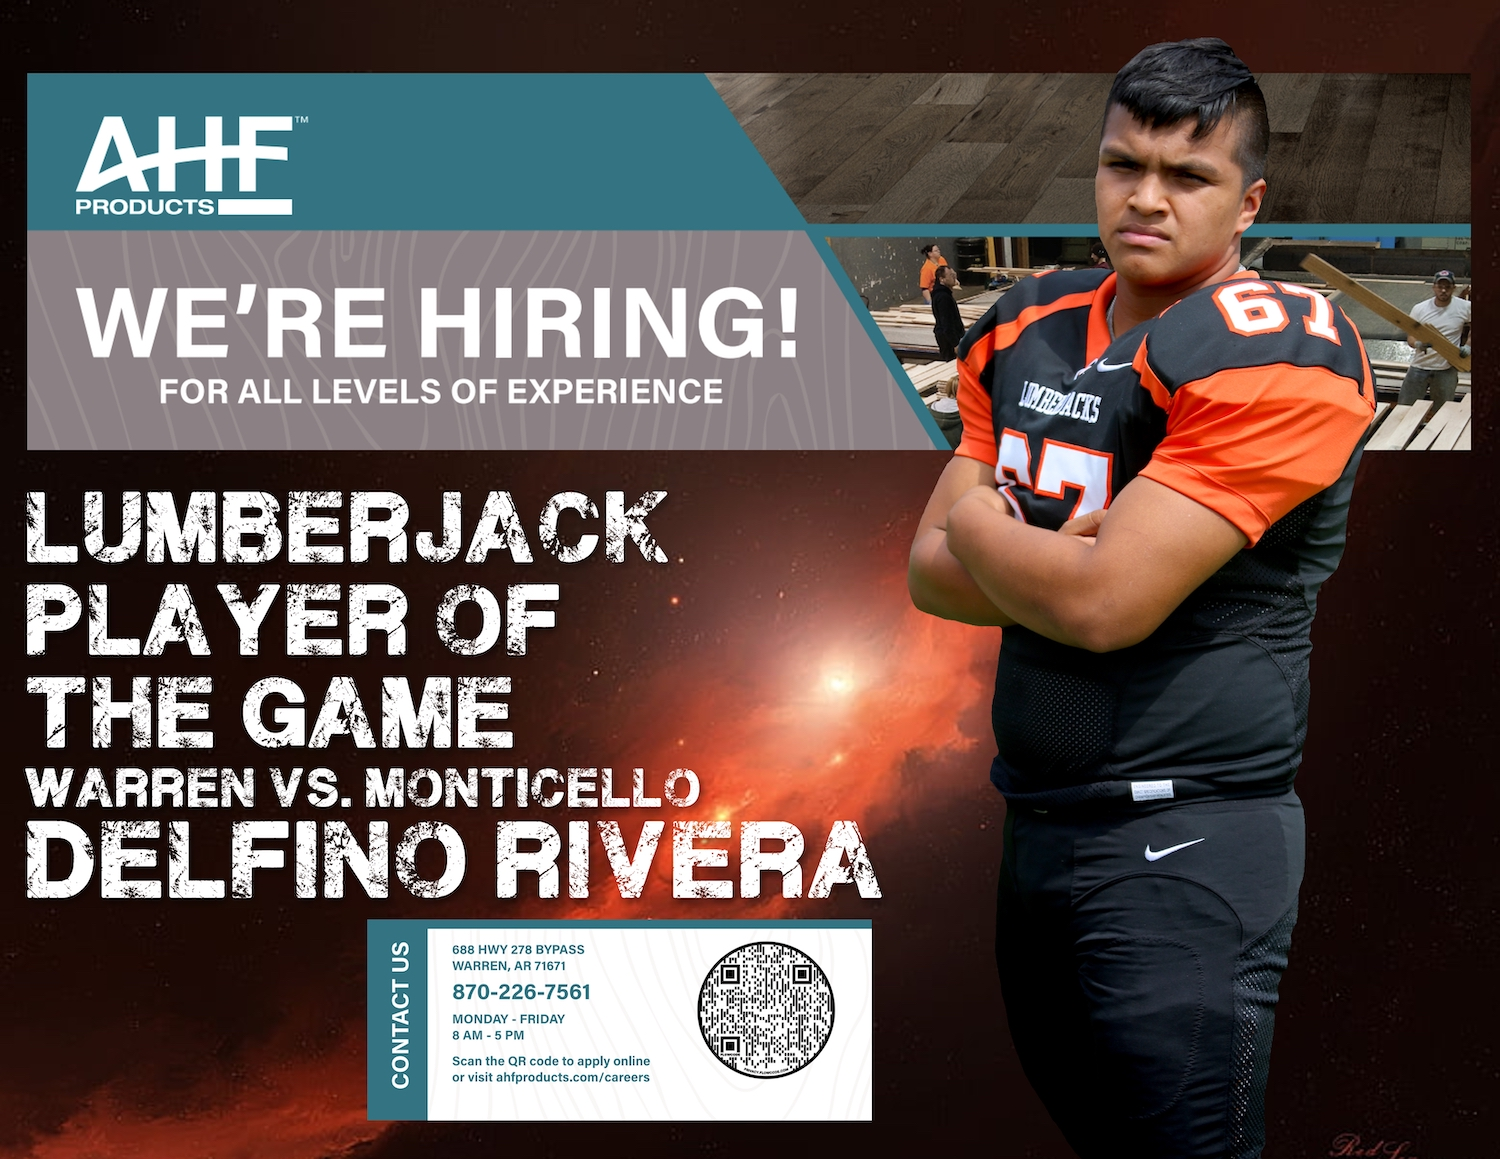 Delfino Rivera named AHF Products Lumberjack Player of the Game vs. Monticello